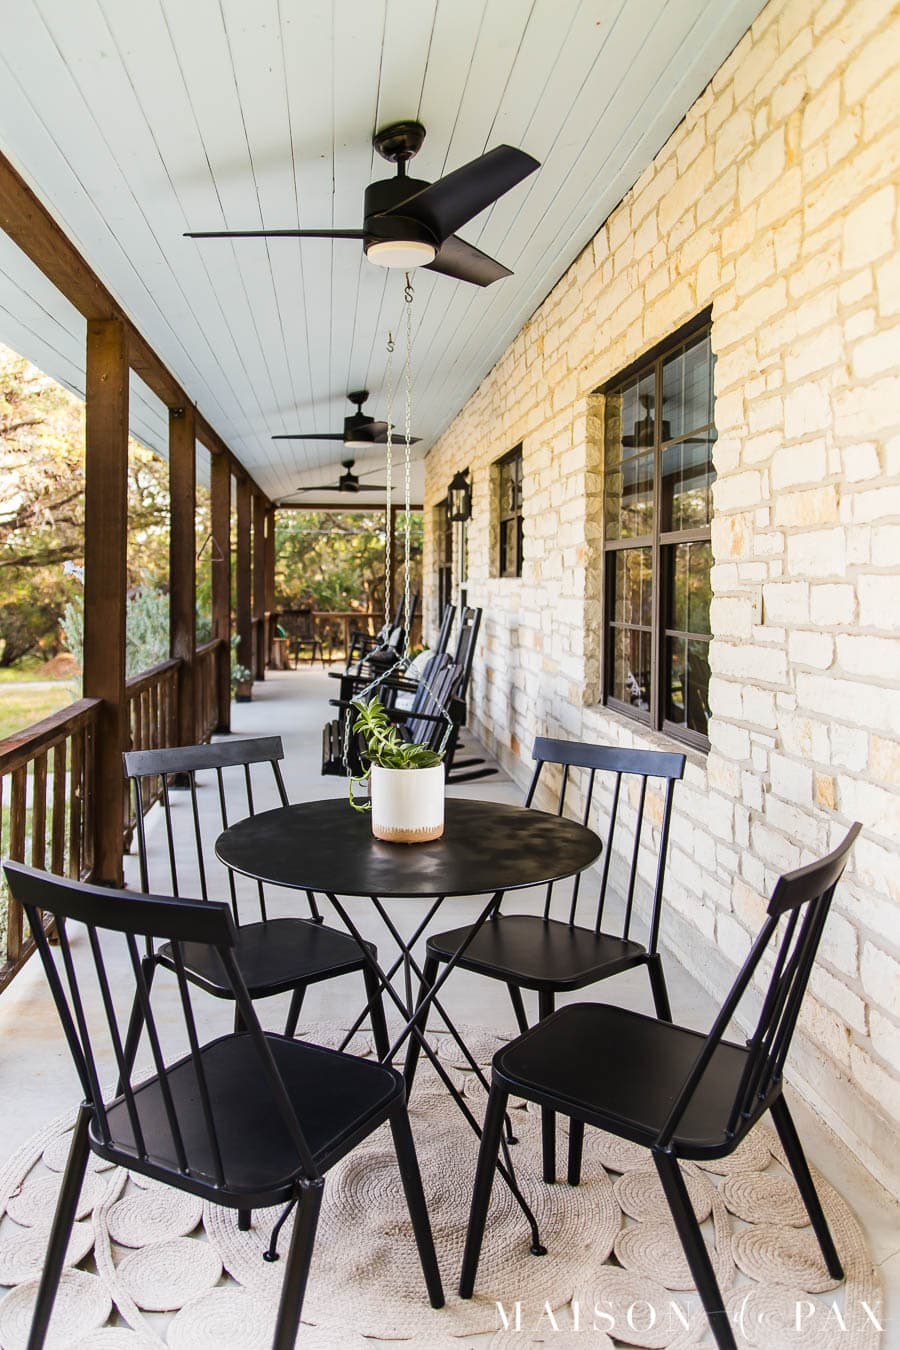 austin stone front porch with haint blue ceiling and black outdoor fans | Maison de Pax